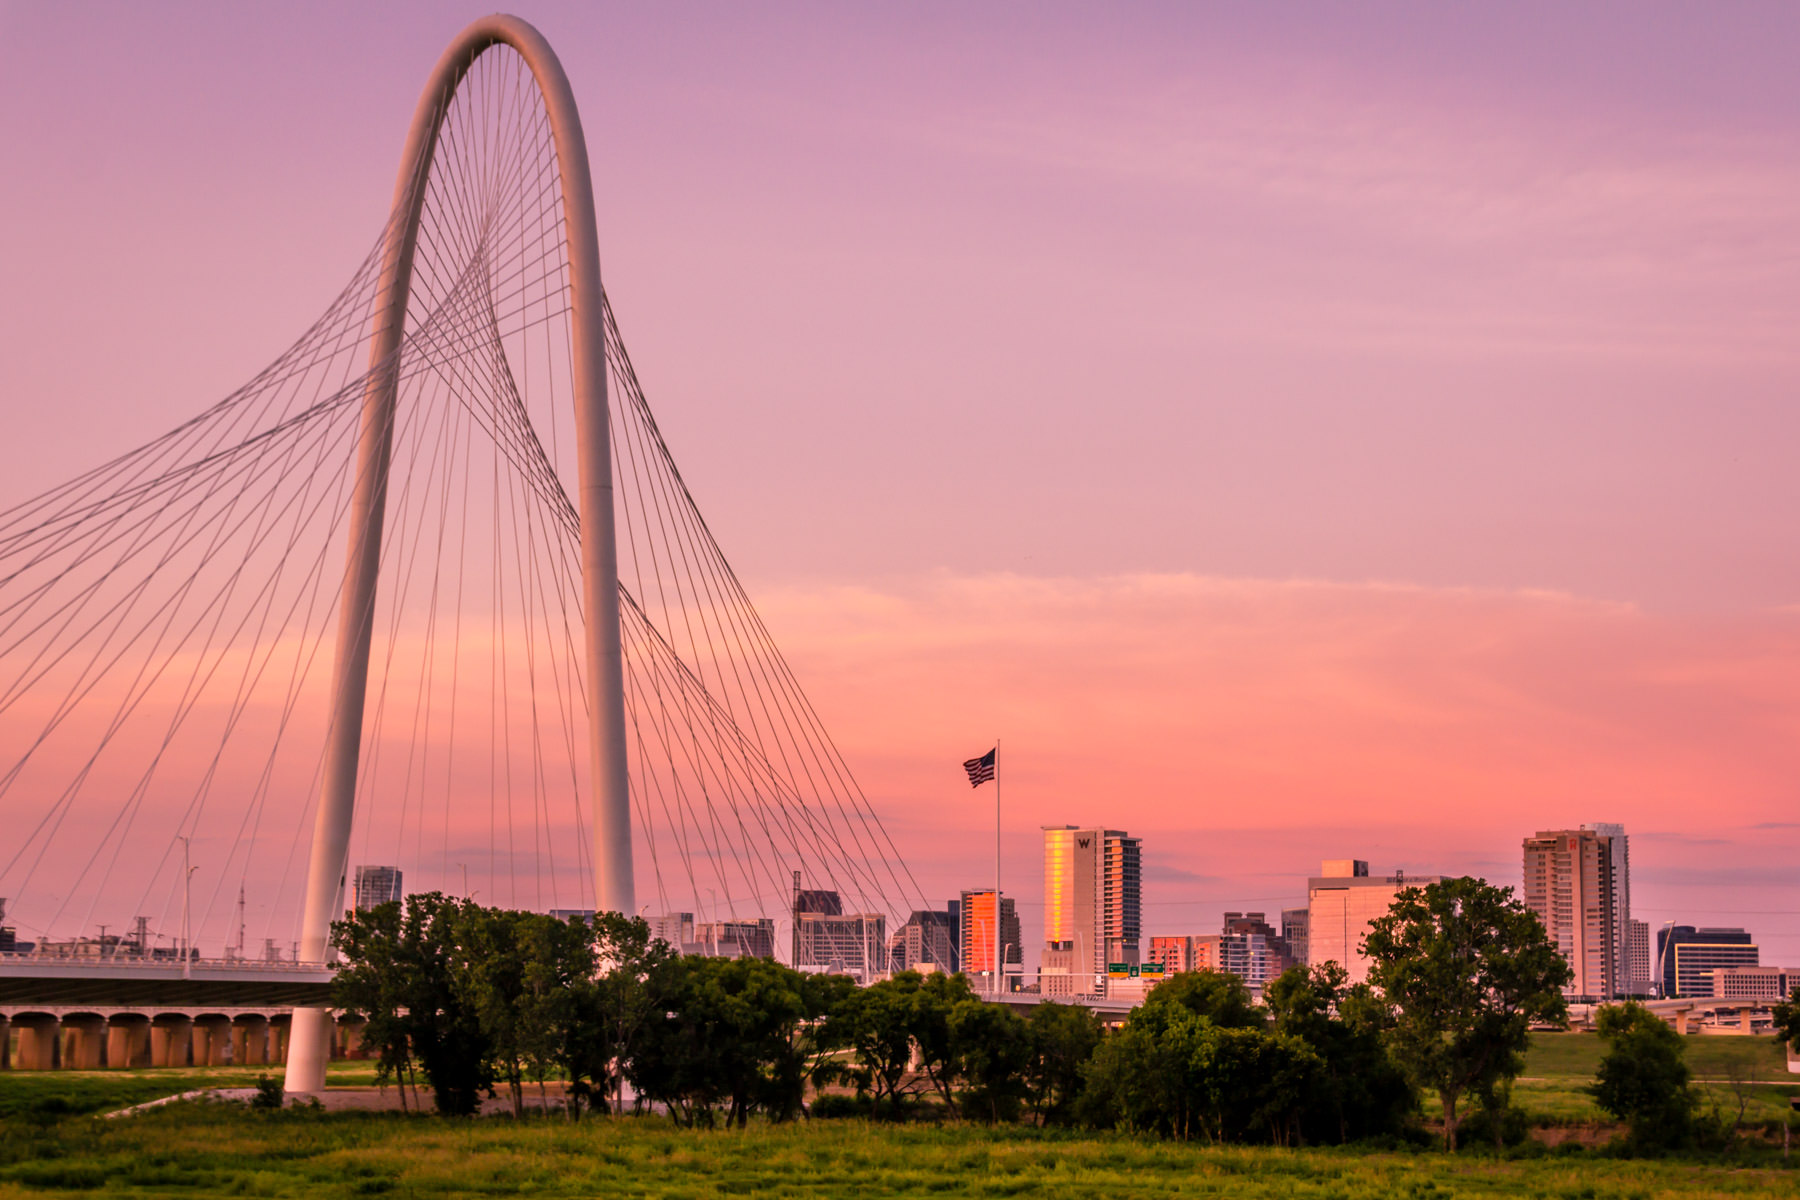 The sun sets on the Santiago Calatrava-designed Margaret Hunt Hill Bridge and Dallas' Uptown neighborhood.